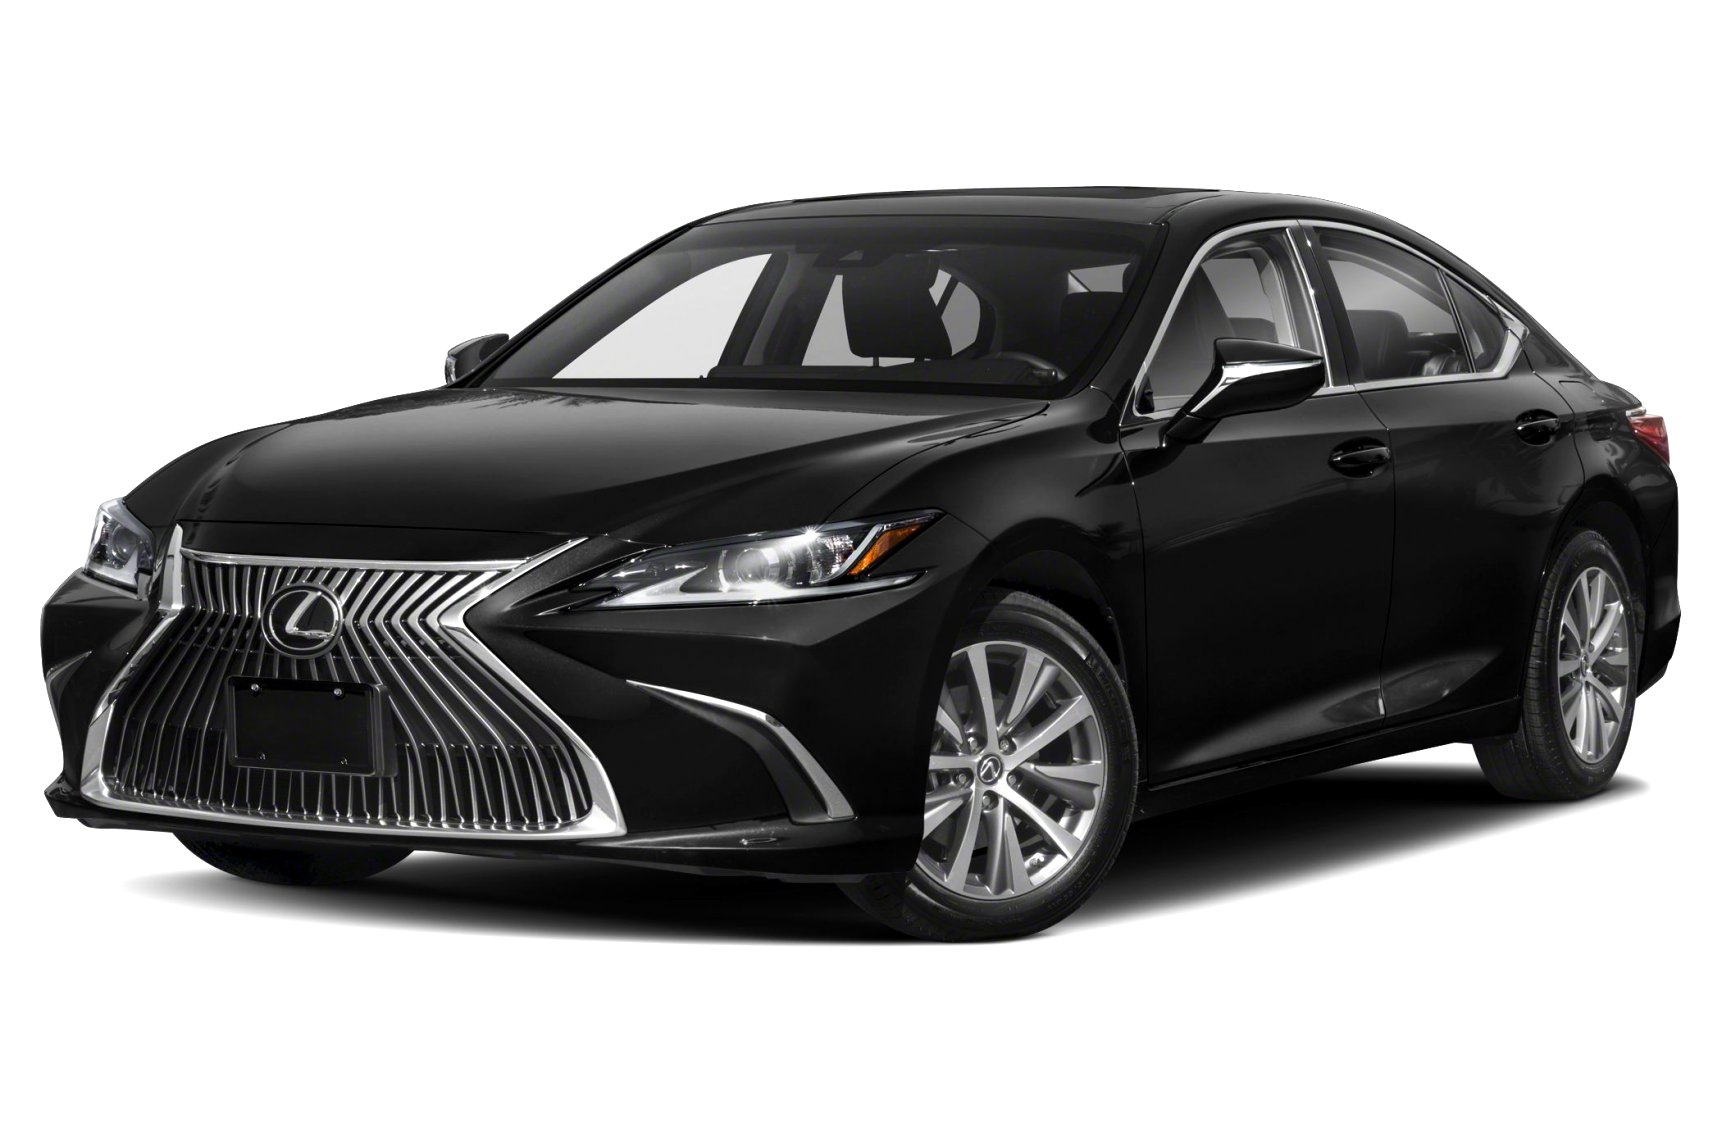 lexus es 350 review 2020 Price and Release date